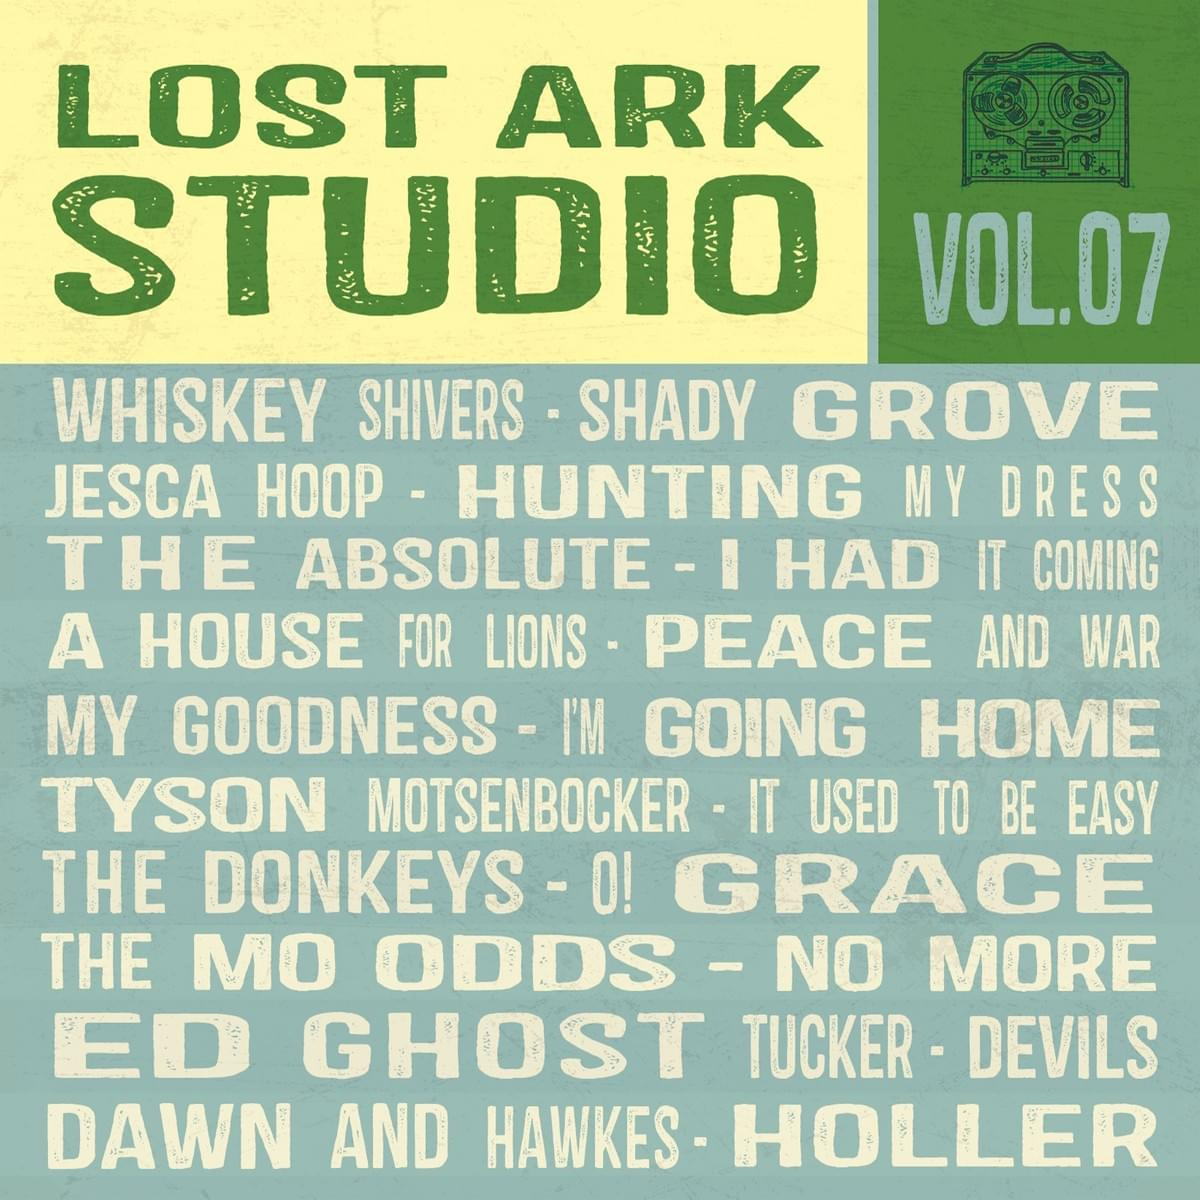 Lost Ark Studio Compilation - Vol. 07